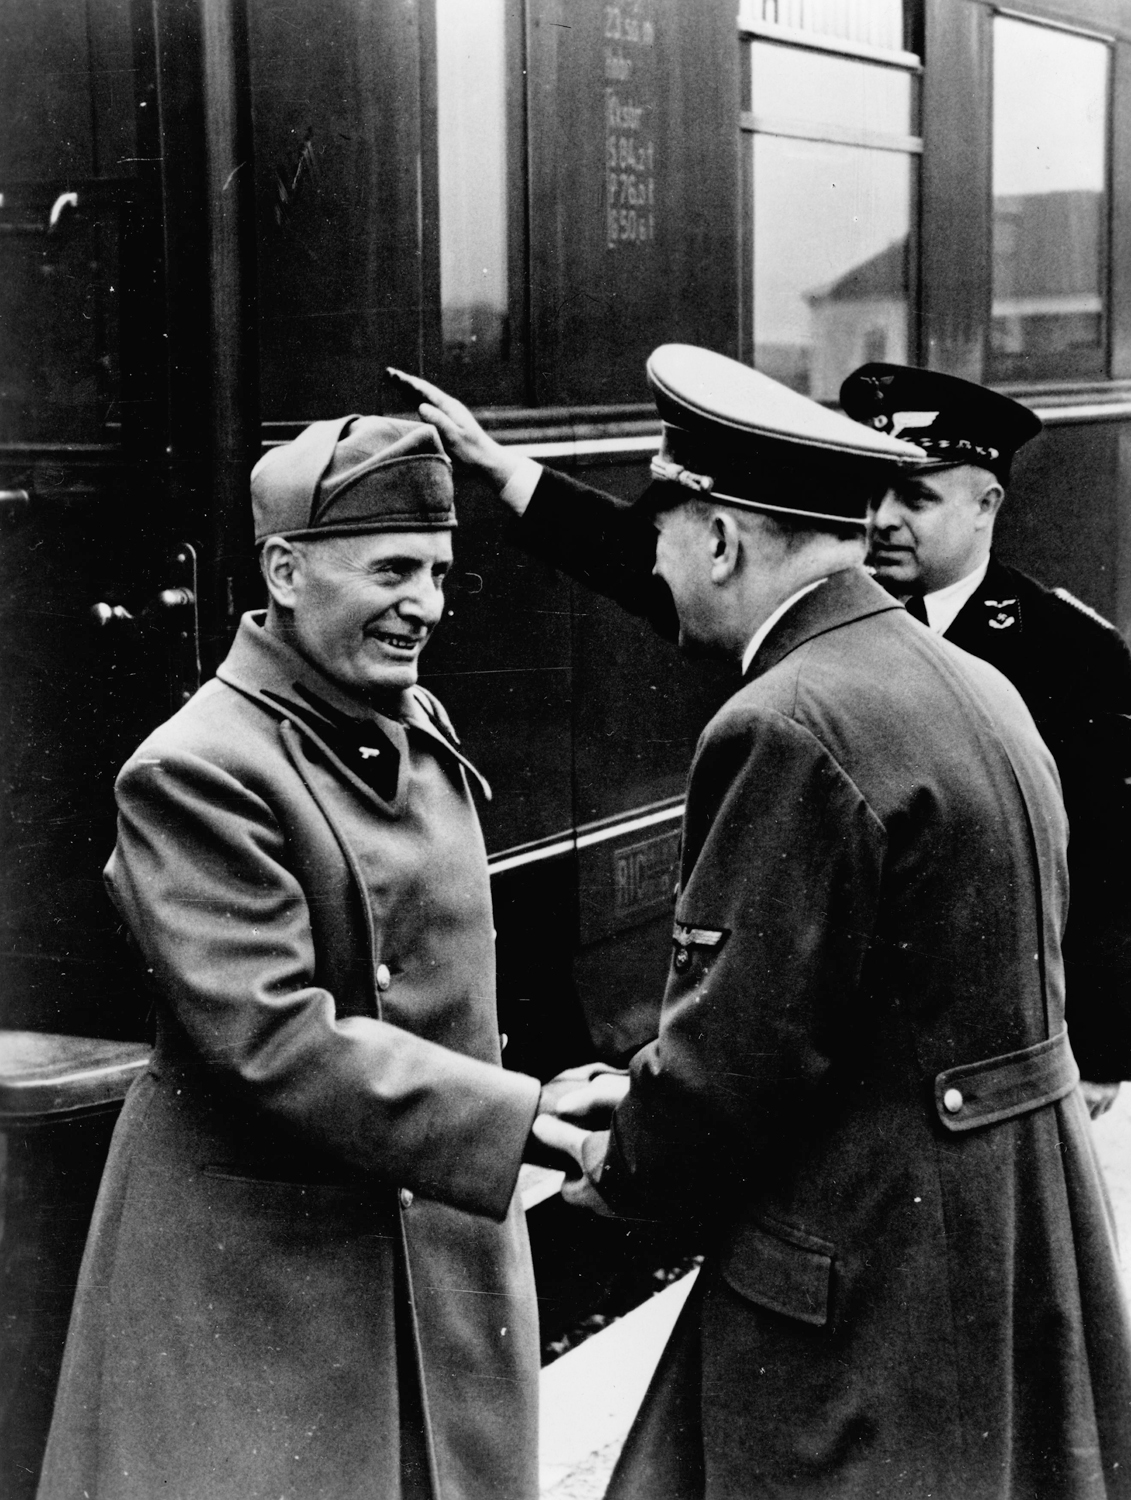 Adolf Hitler greets Benito Mussolini as he arrives at the train station before their meeting at Schloss Kleßheim